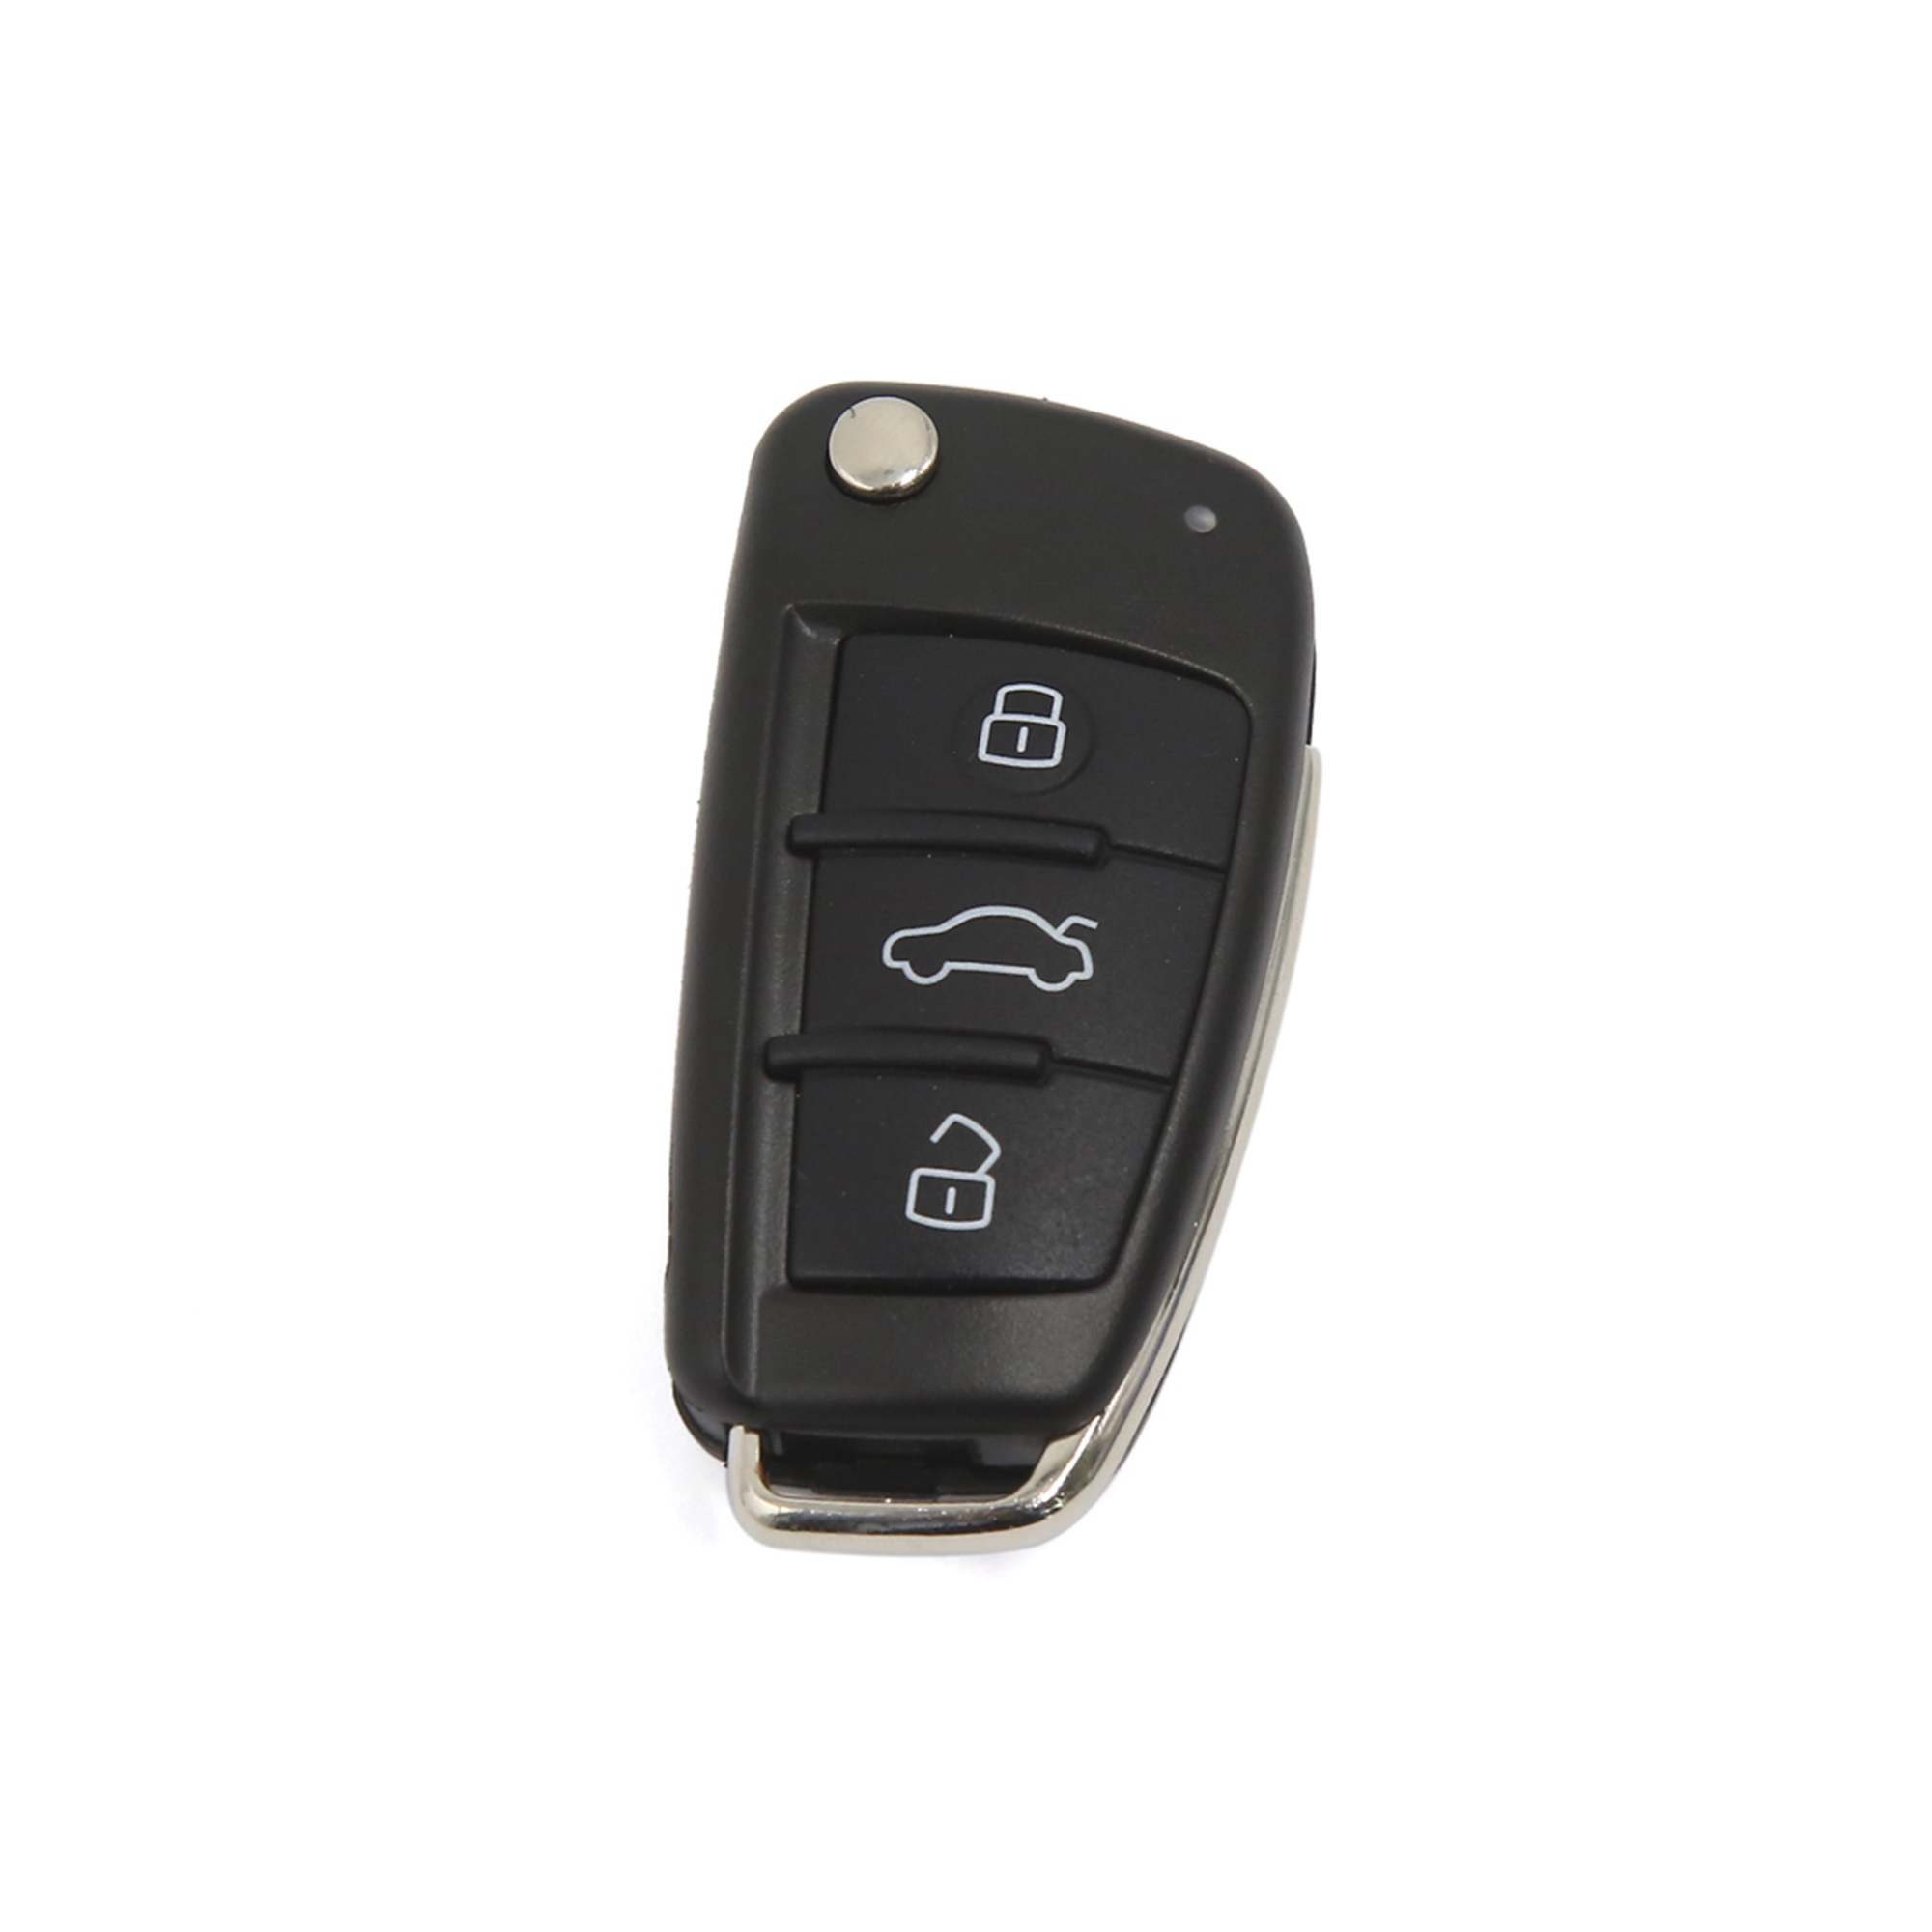 3 Buttons Replacement Remote Flip Key Fob Case Shell for Audi A3 A4 A6 Q7 TT